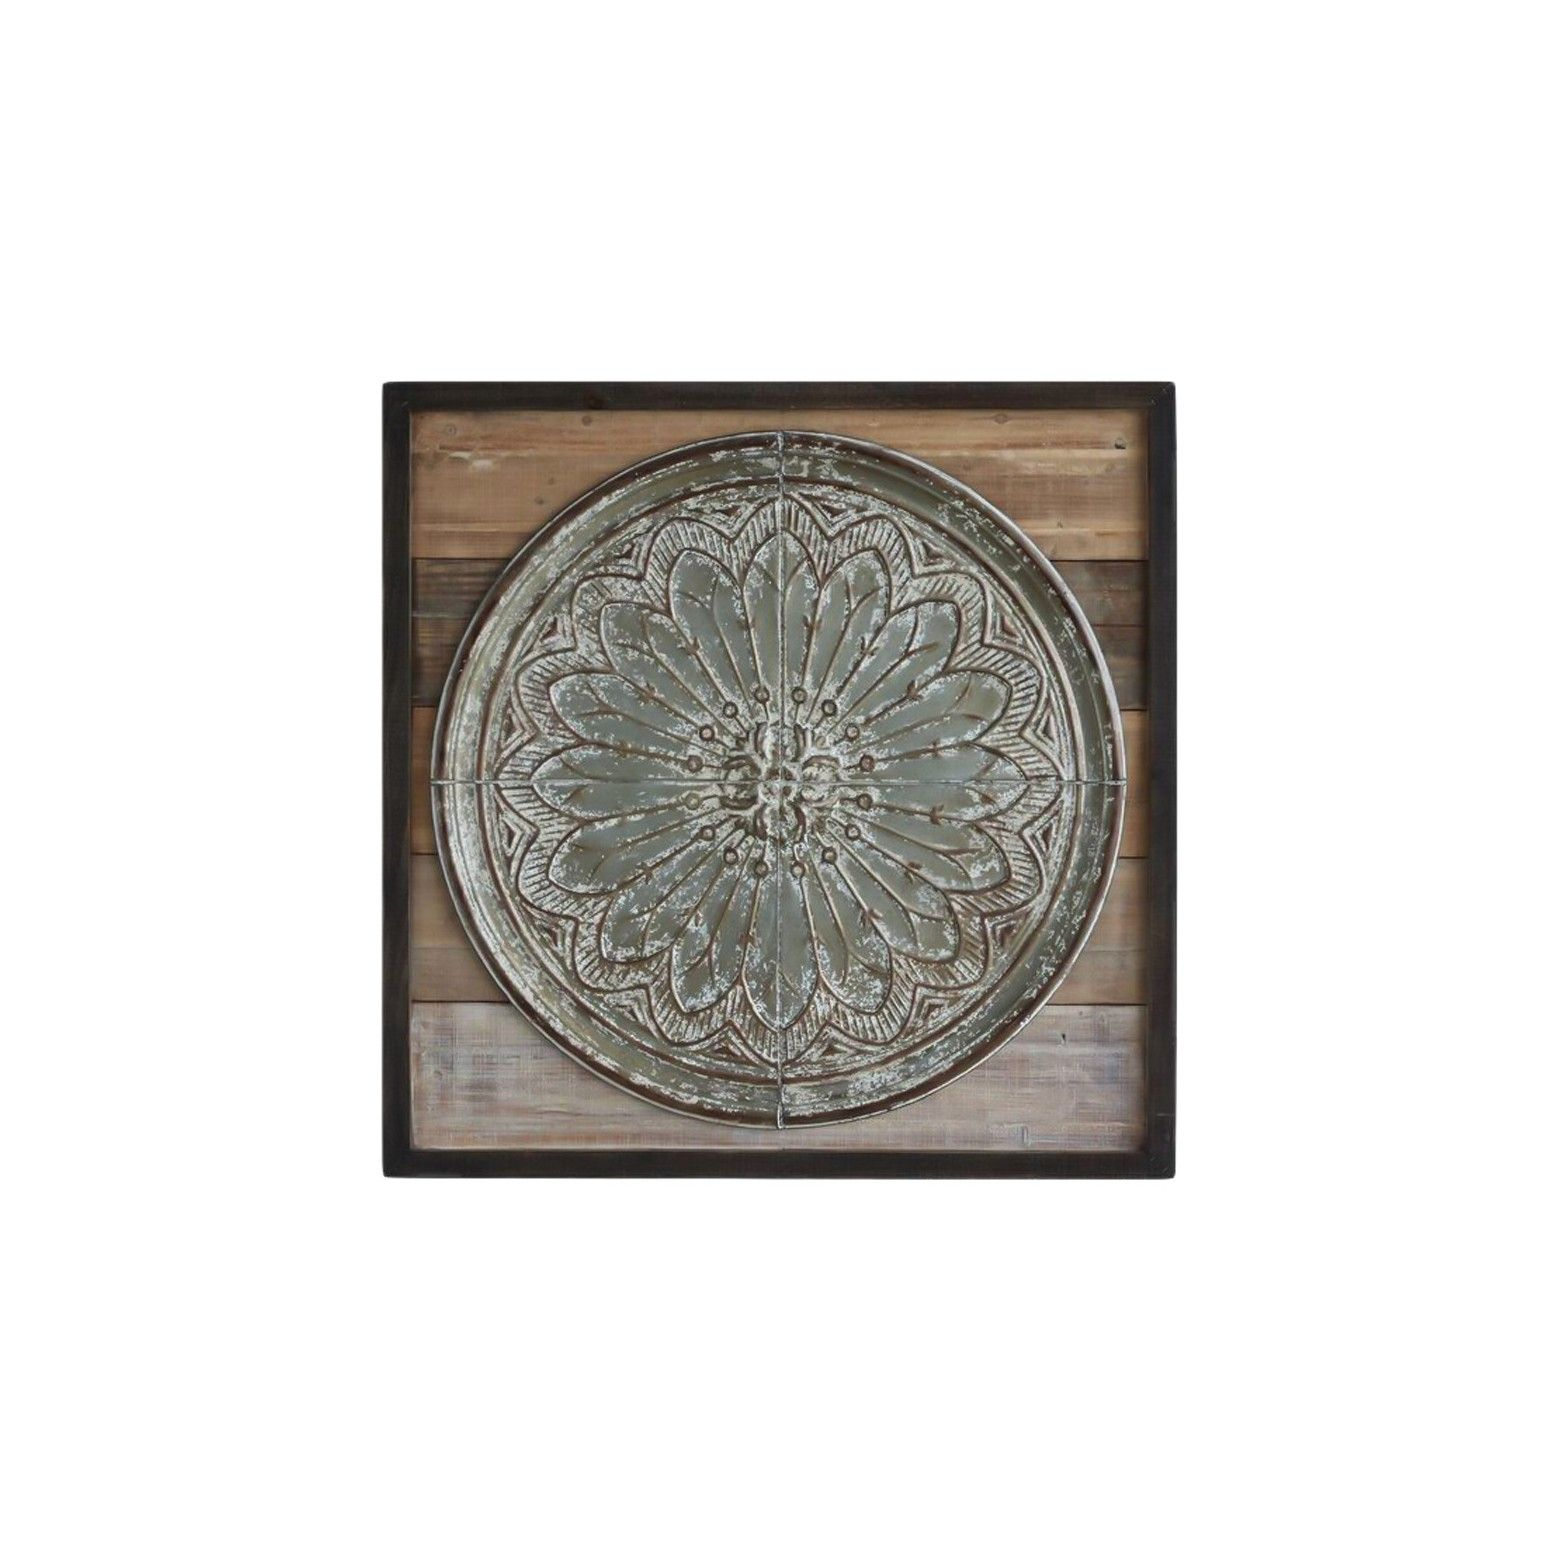 Shop Target for farmhouse wall decor you will love at great low prices. Free shipping on orders $35+ or free same-day pick-up in store.